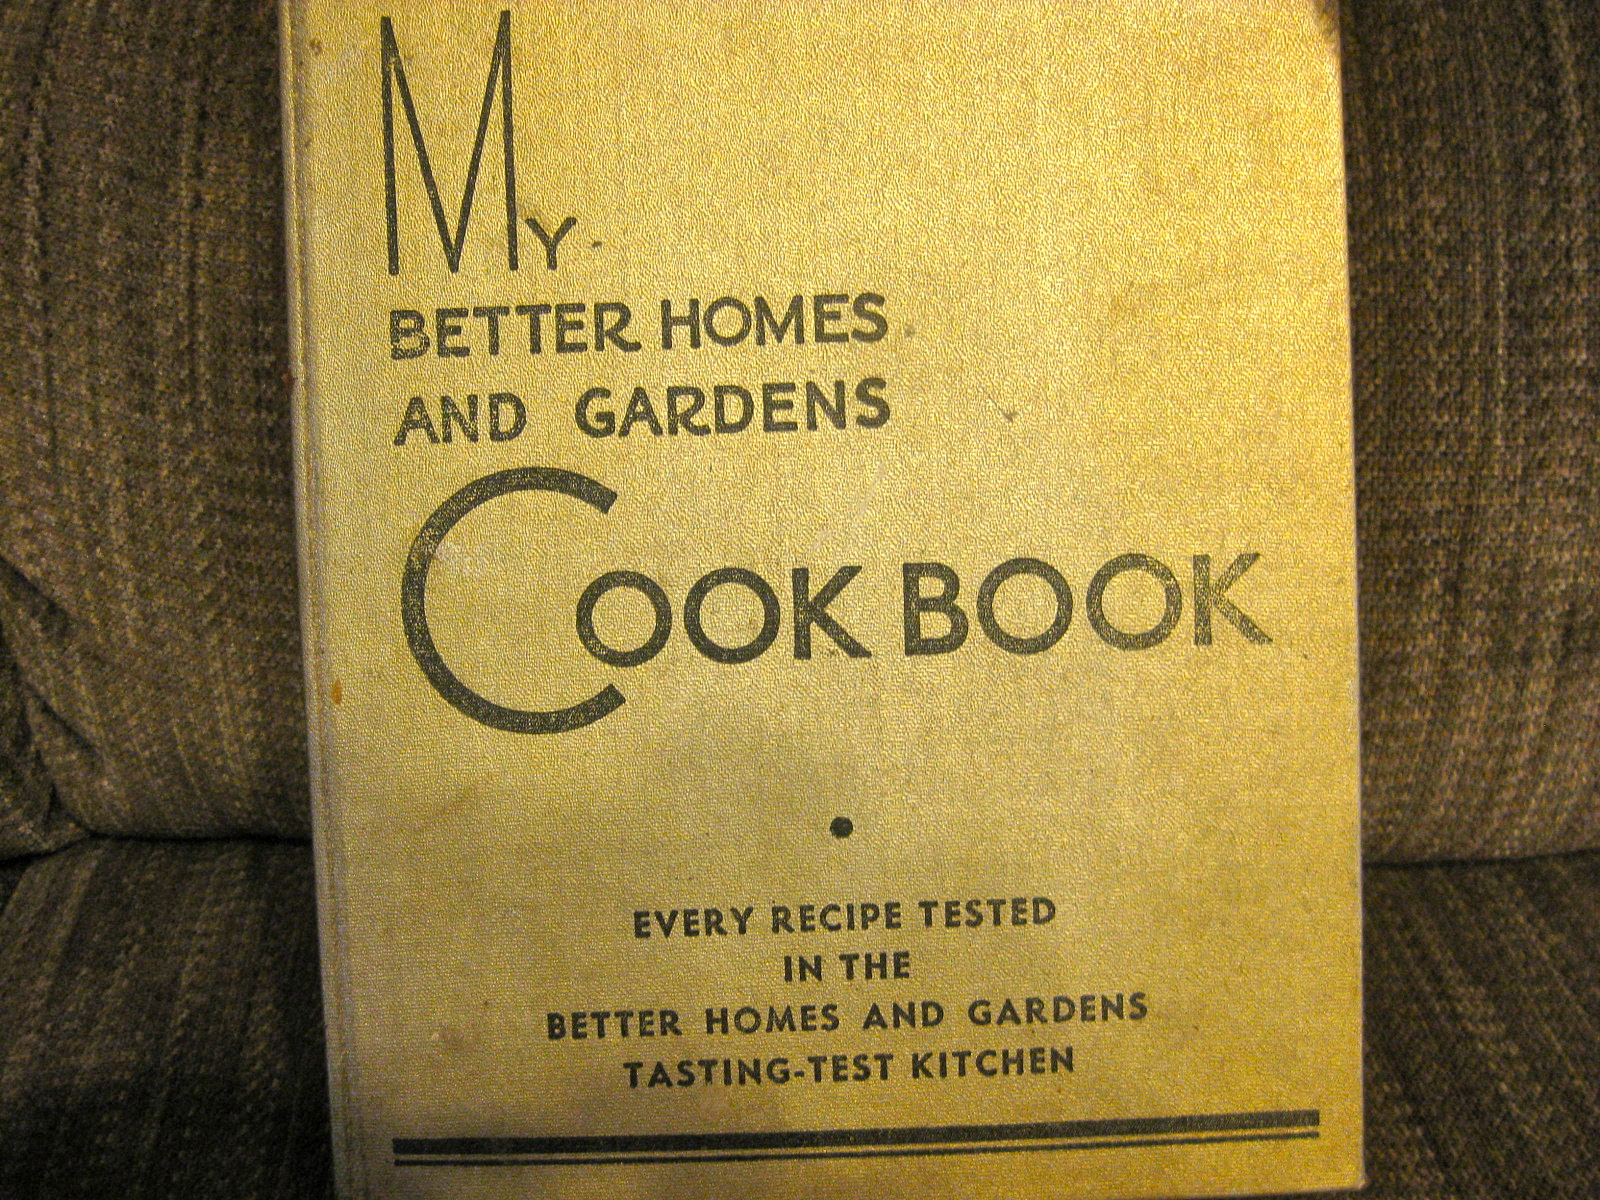 Just Me Better Homes And Gardens Cookbooks